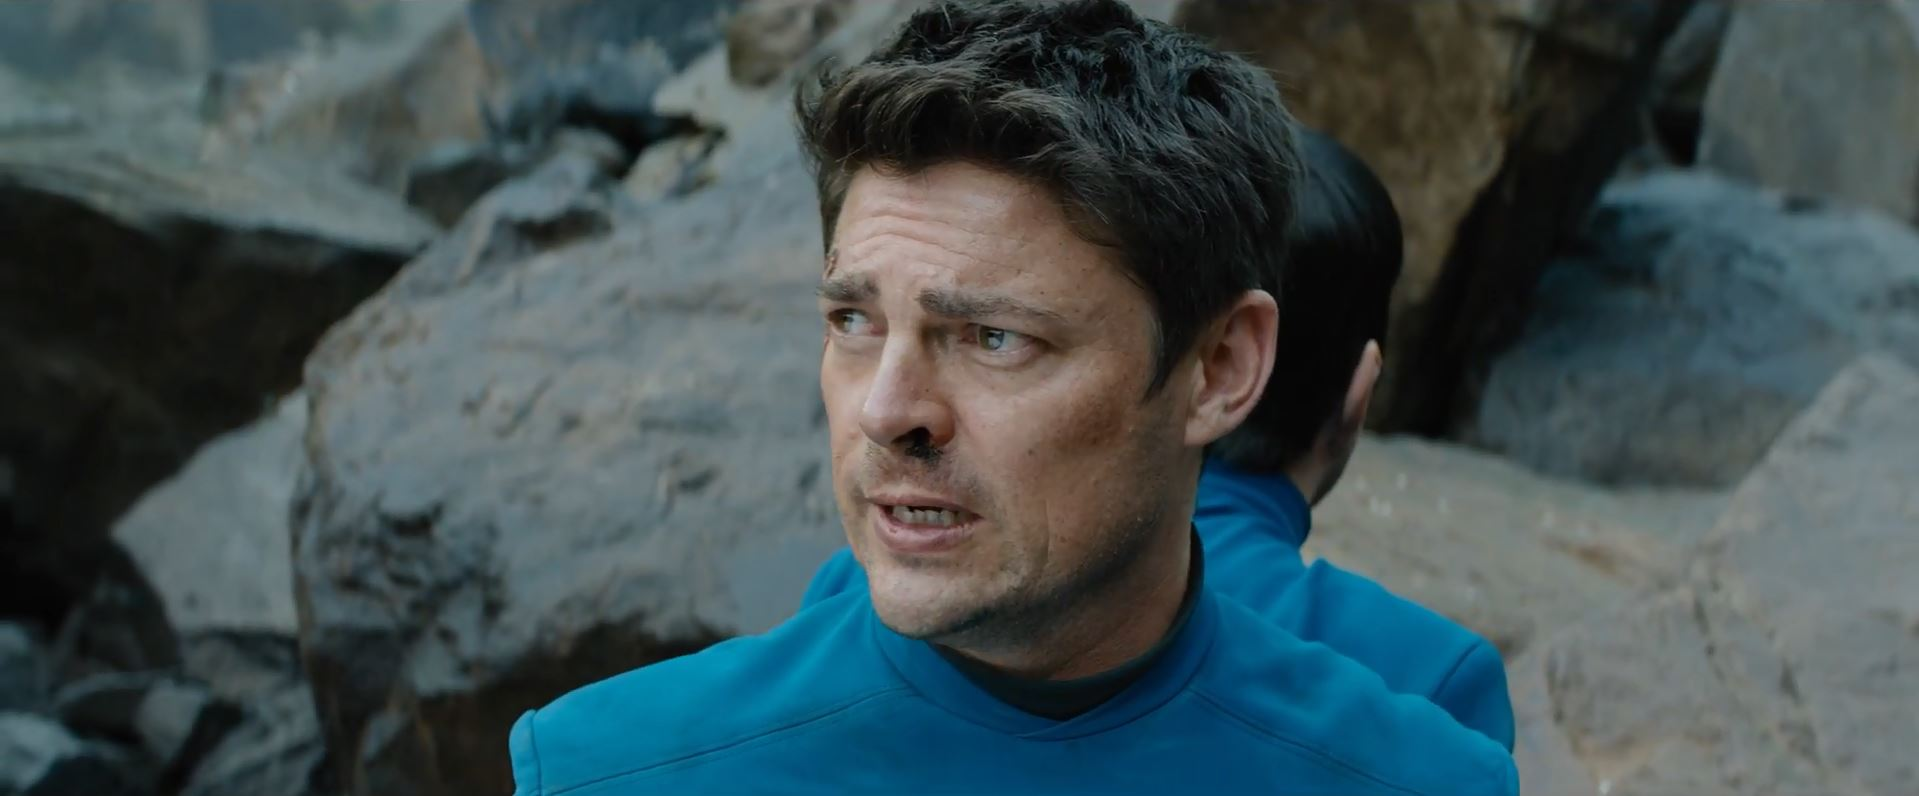 First trailer for Star Trek Beyond. Karl Urban as Doctor McCoy